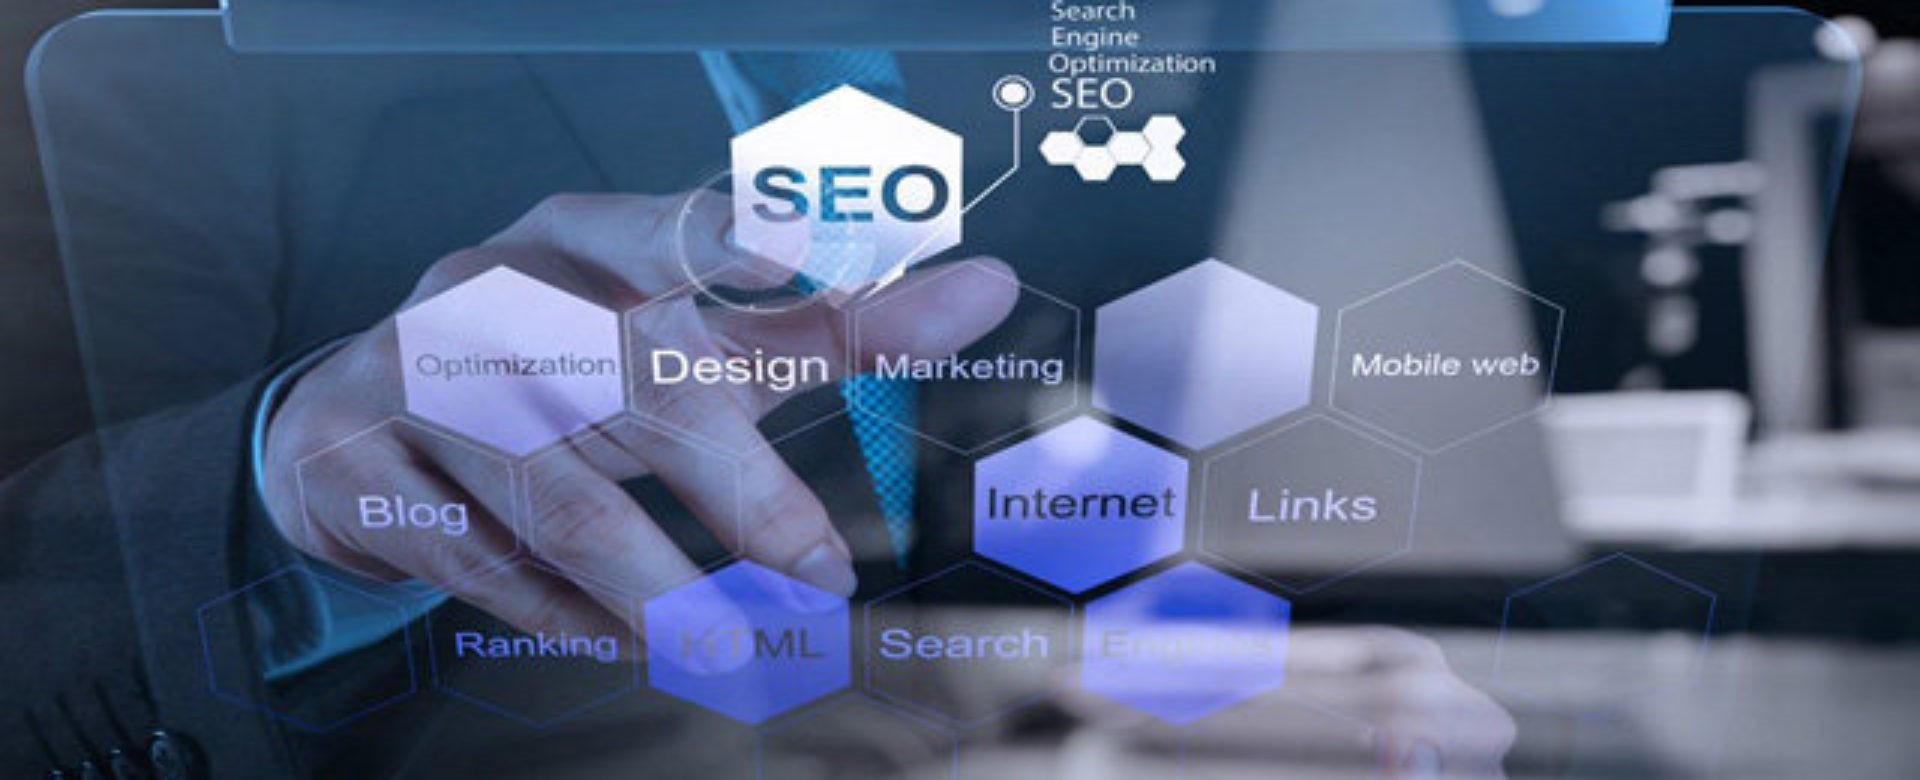 What To Look For In A SEO Expert? - Tricky Enough